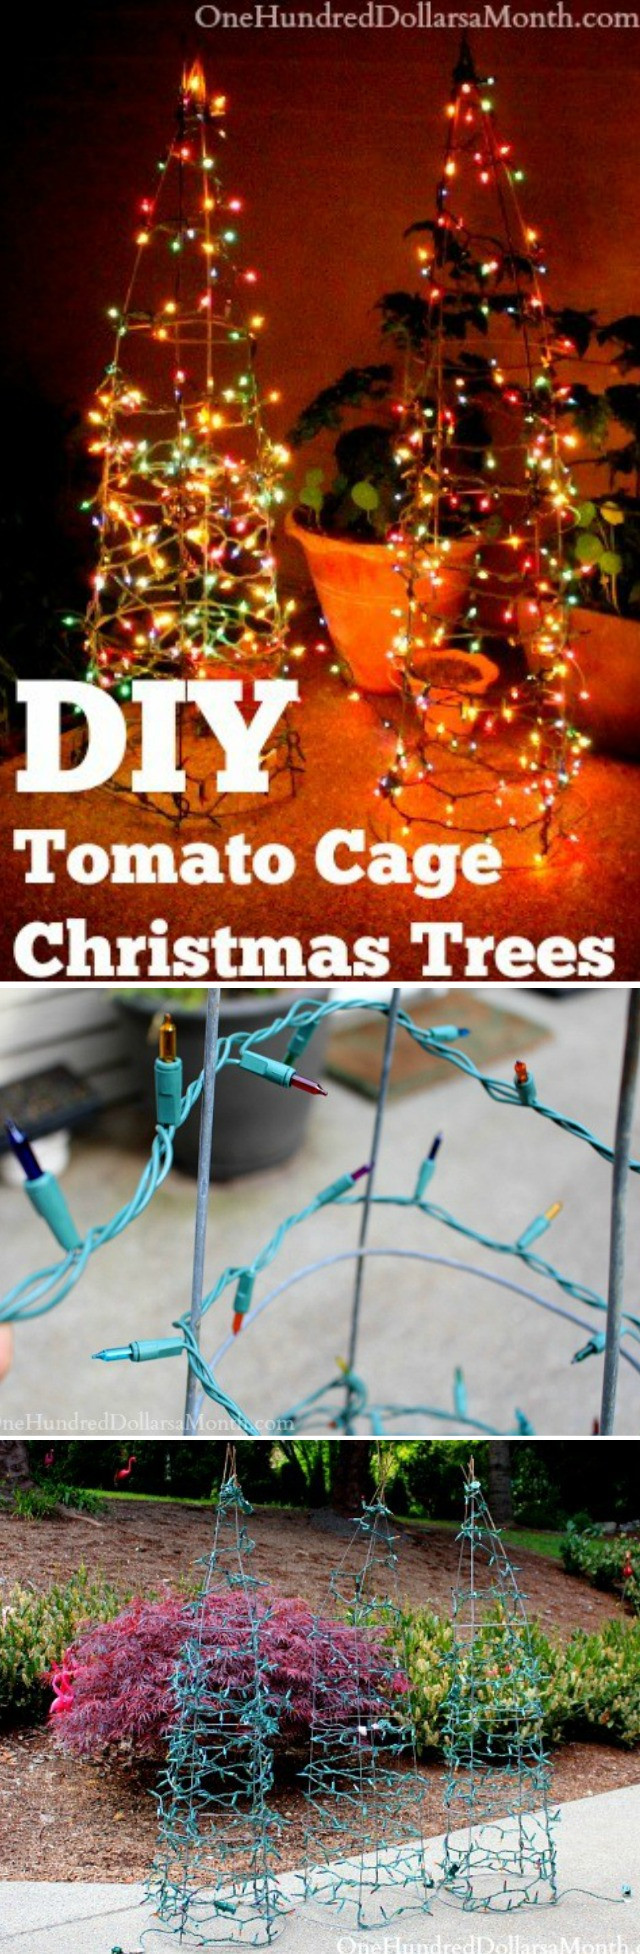 Best ideas about DIY Tomato Cage Christmas Tree . Save or Pin DIY Tomato Cage Christmas Trees e Hundred Dollars a Month Now.